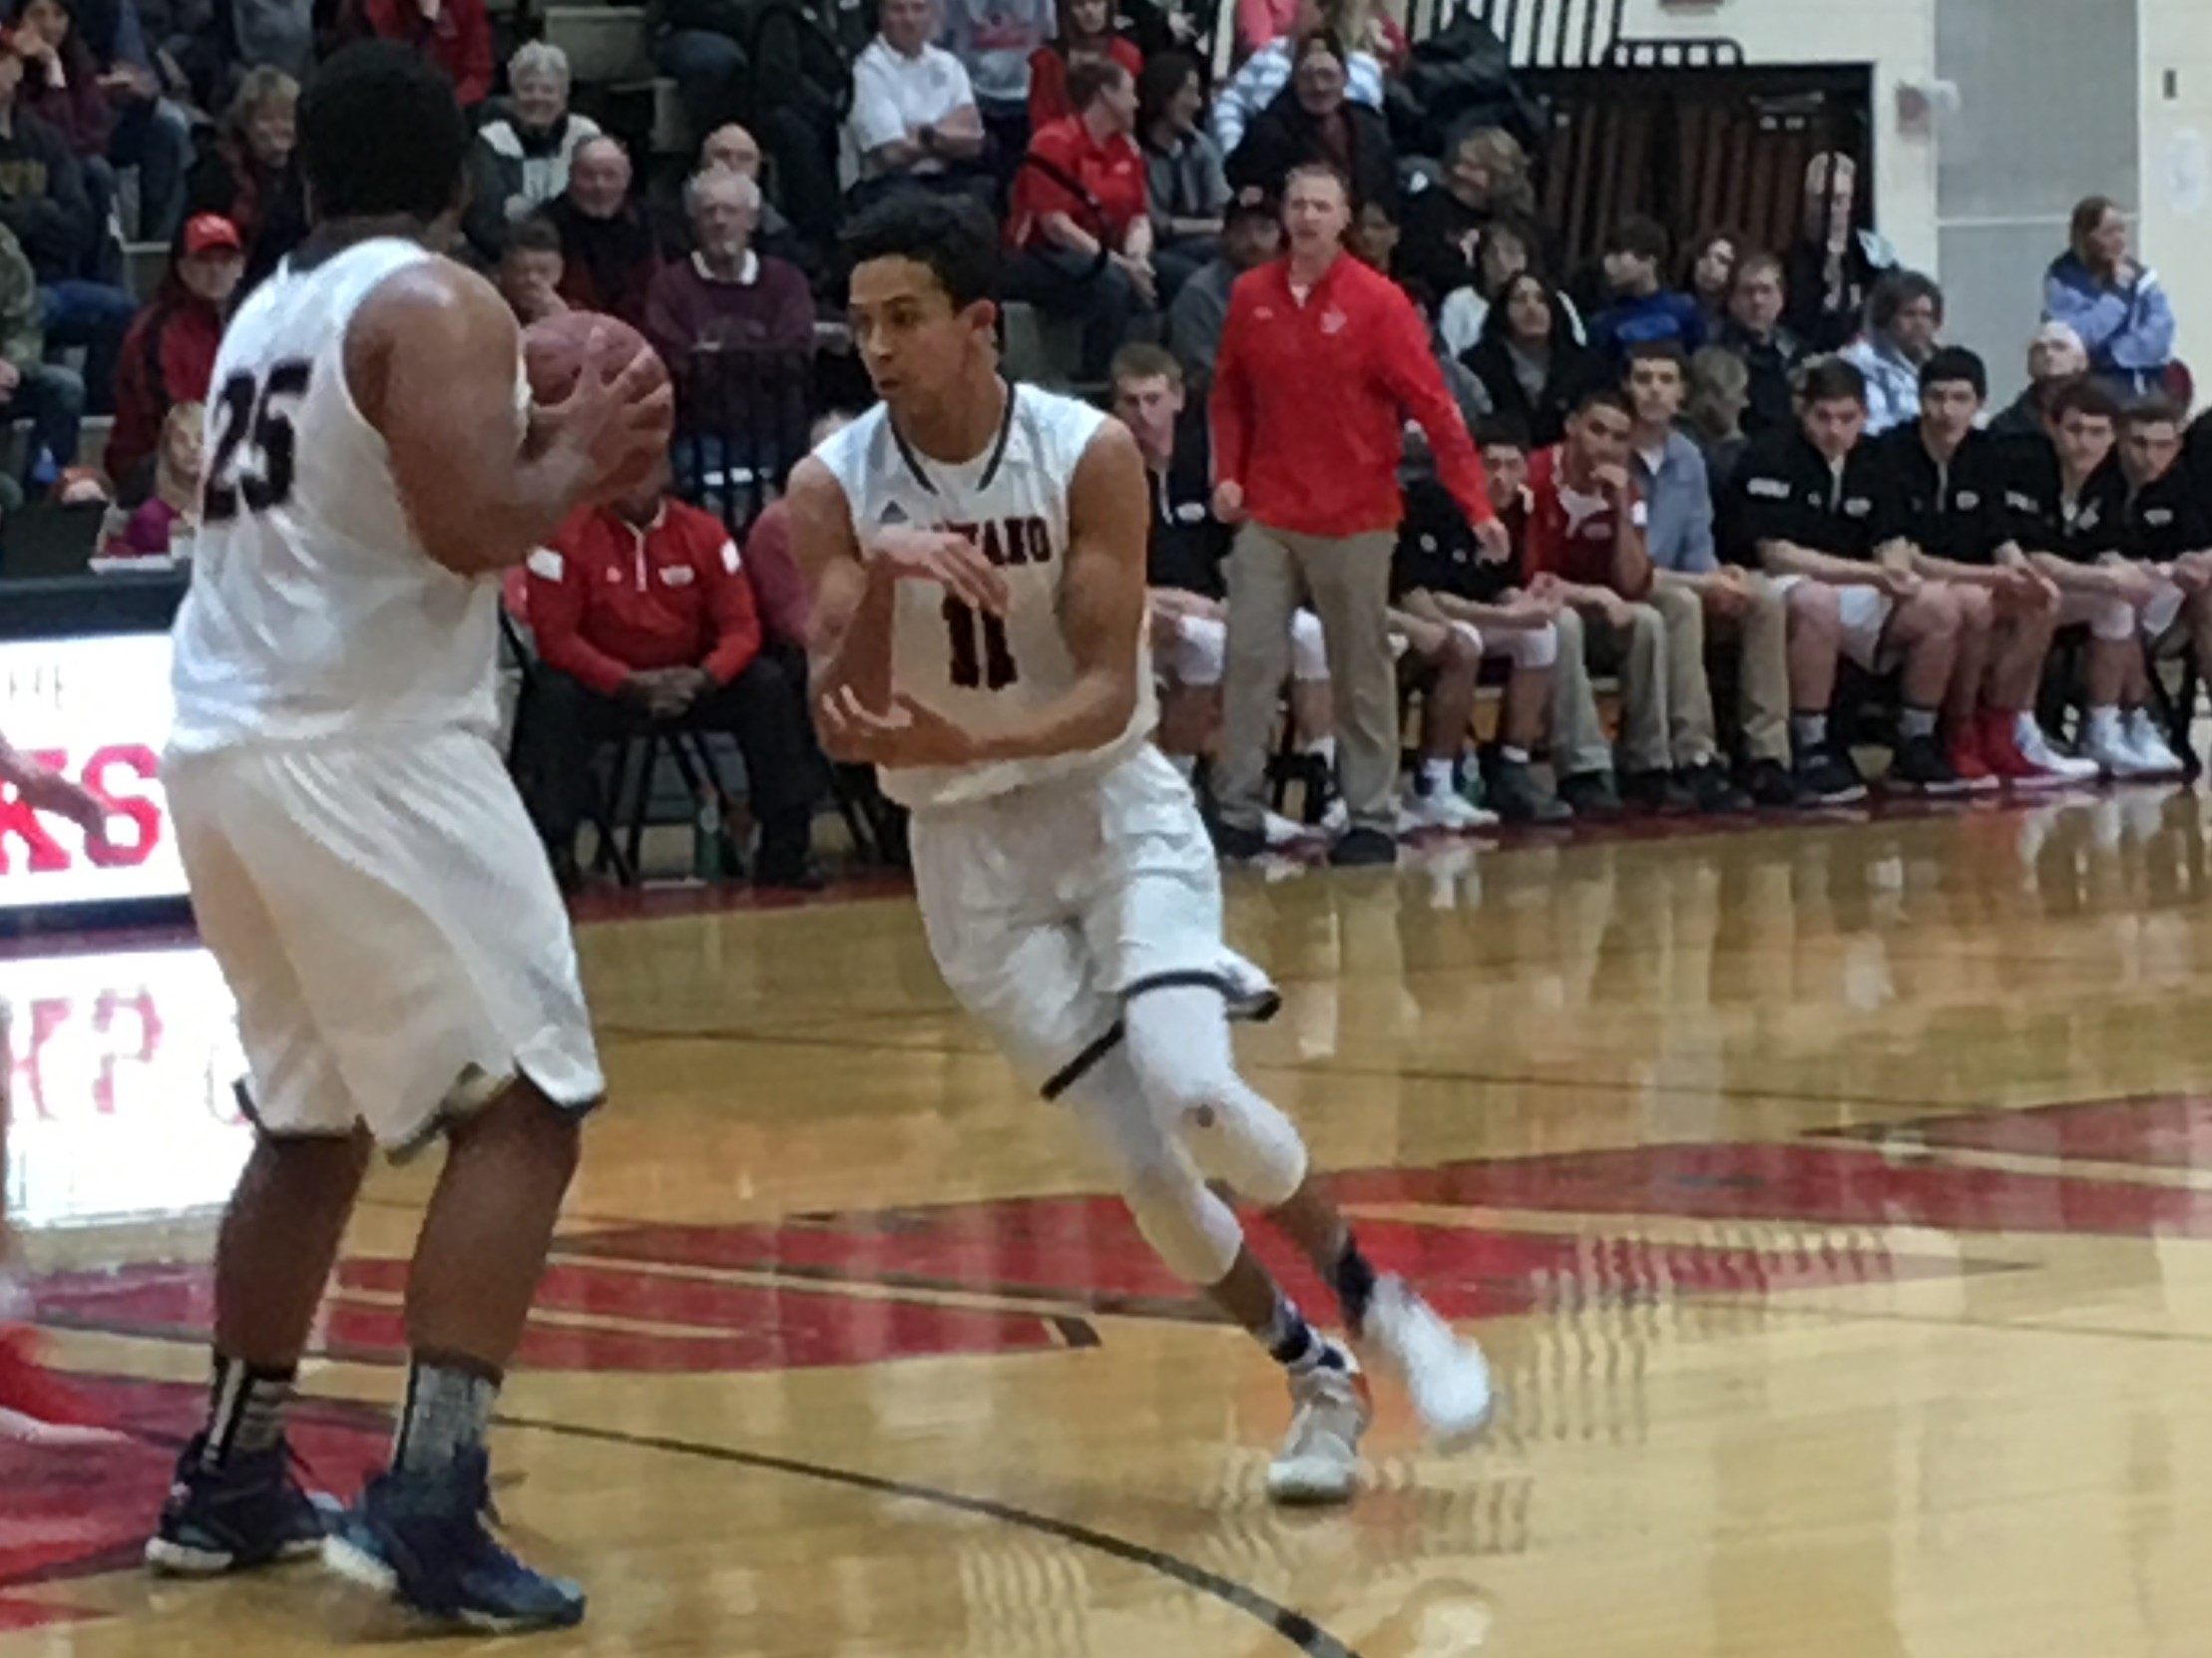 Weisnicht and Wagner lead Shawano past Menasha